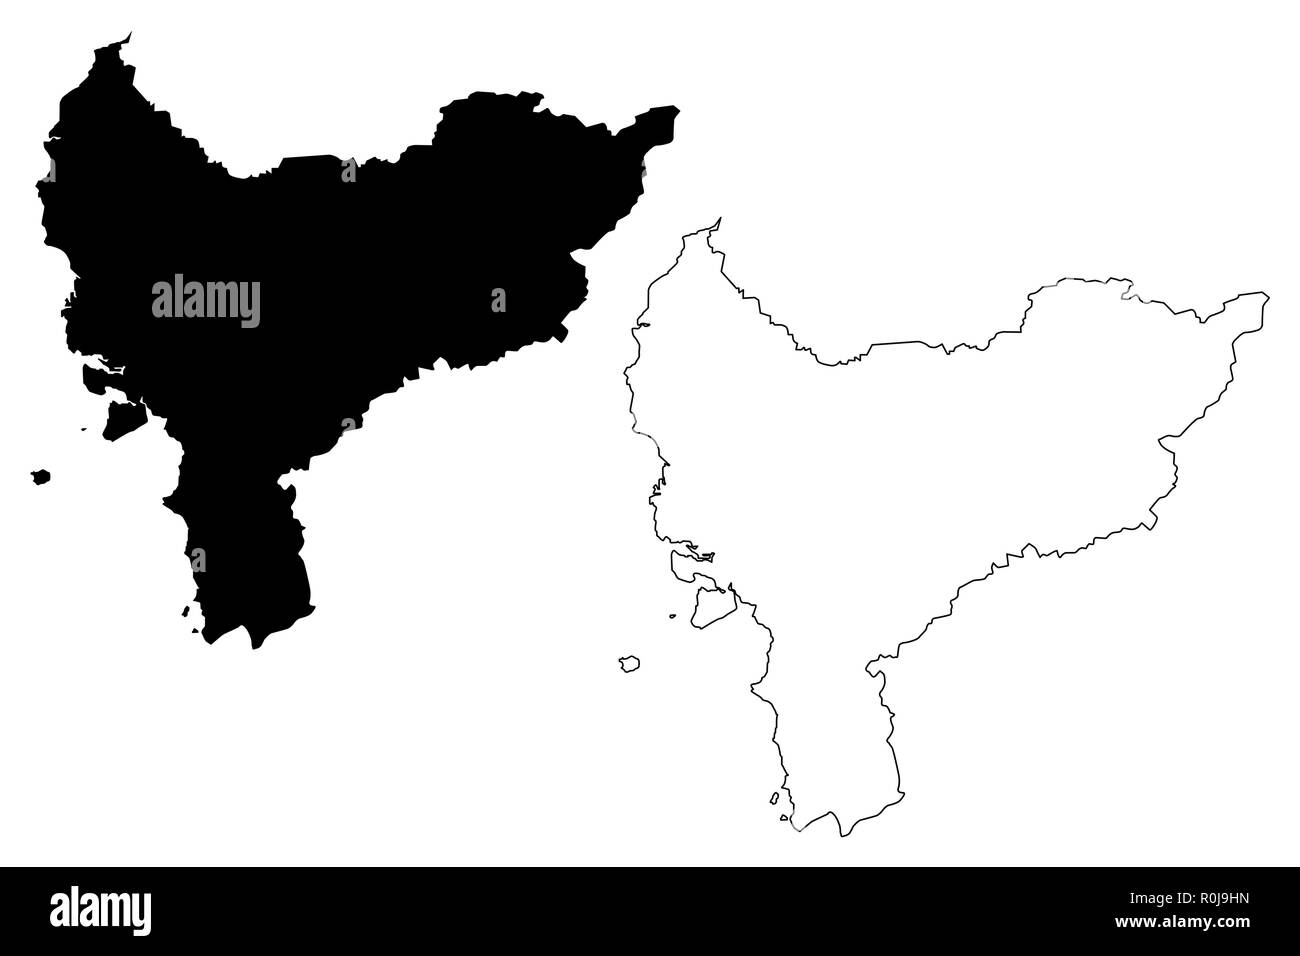 West Kalimantan (Subdivisions of Indonesia, Provinces of Indonesia) map vector illustration, scribble sketch West Kalimantan map - Stock Image